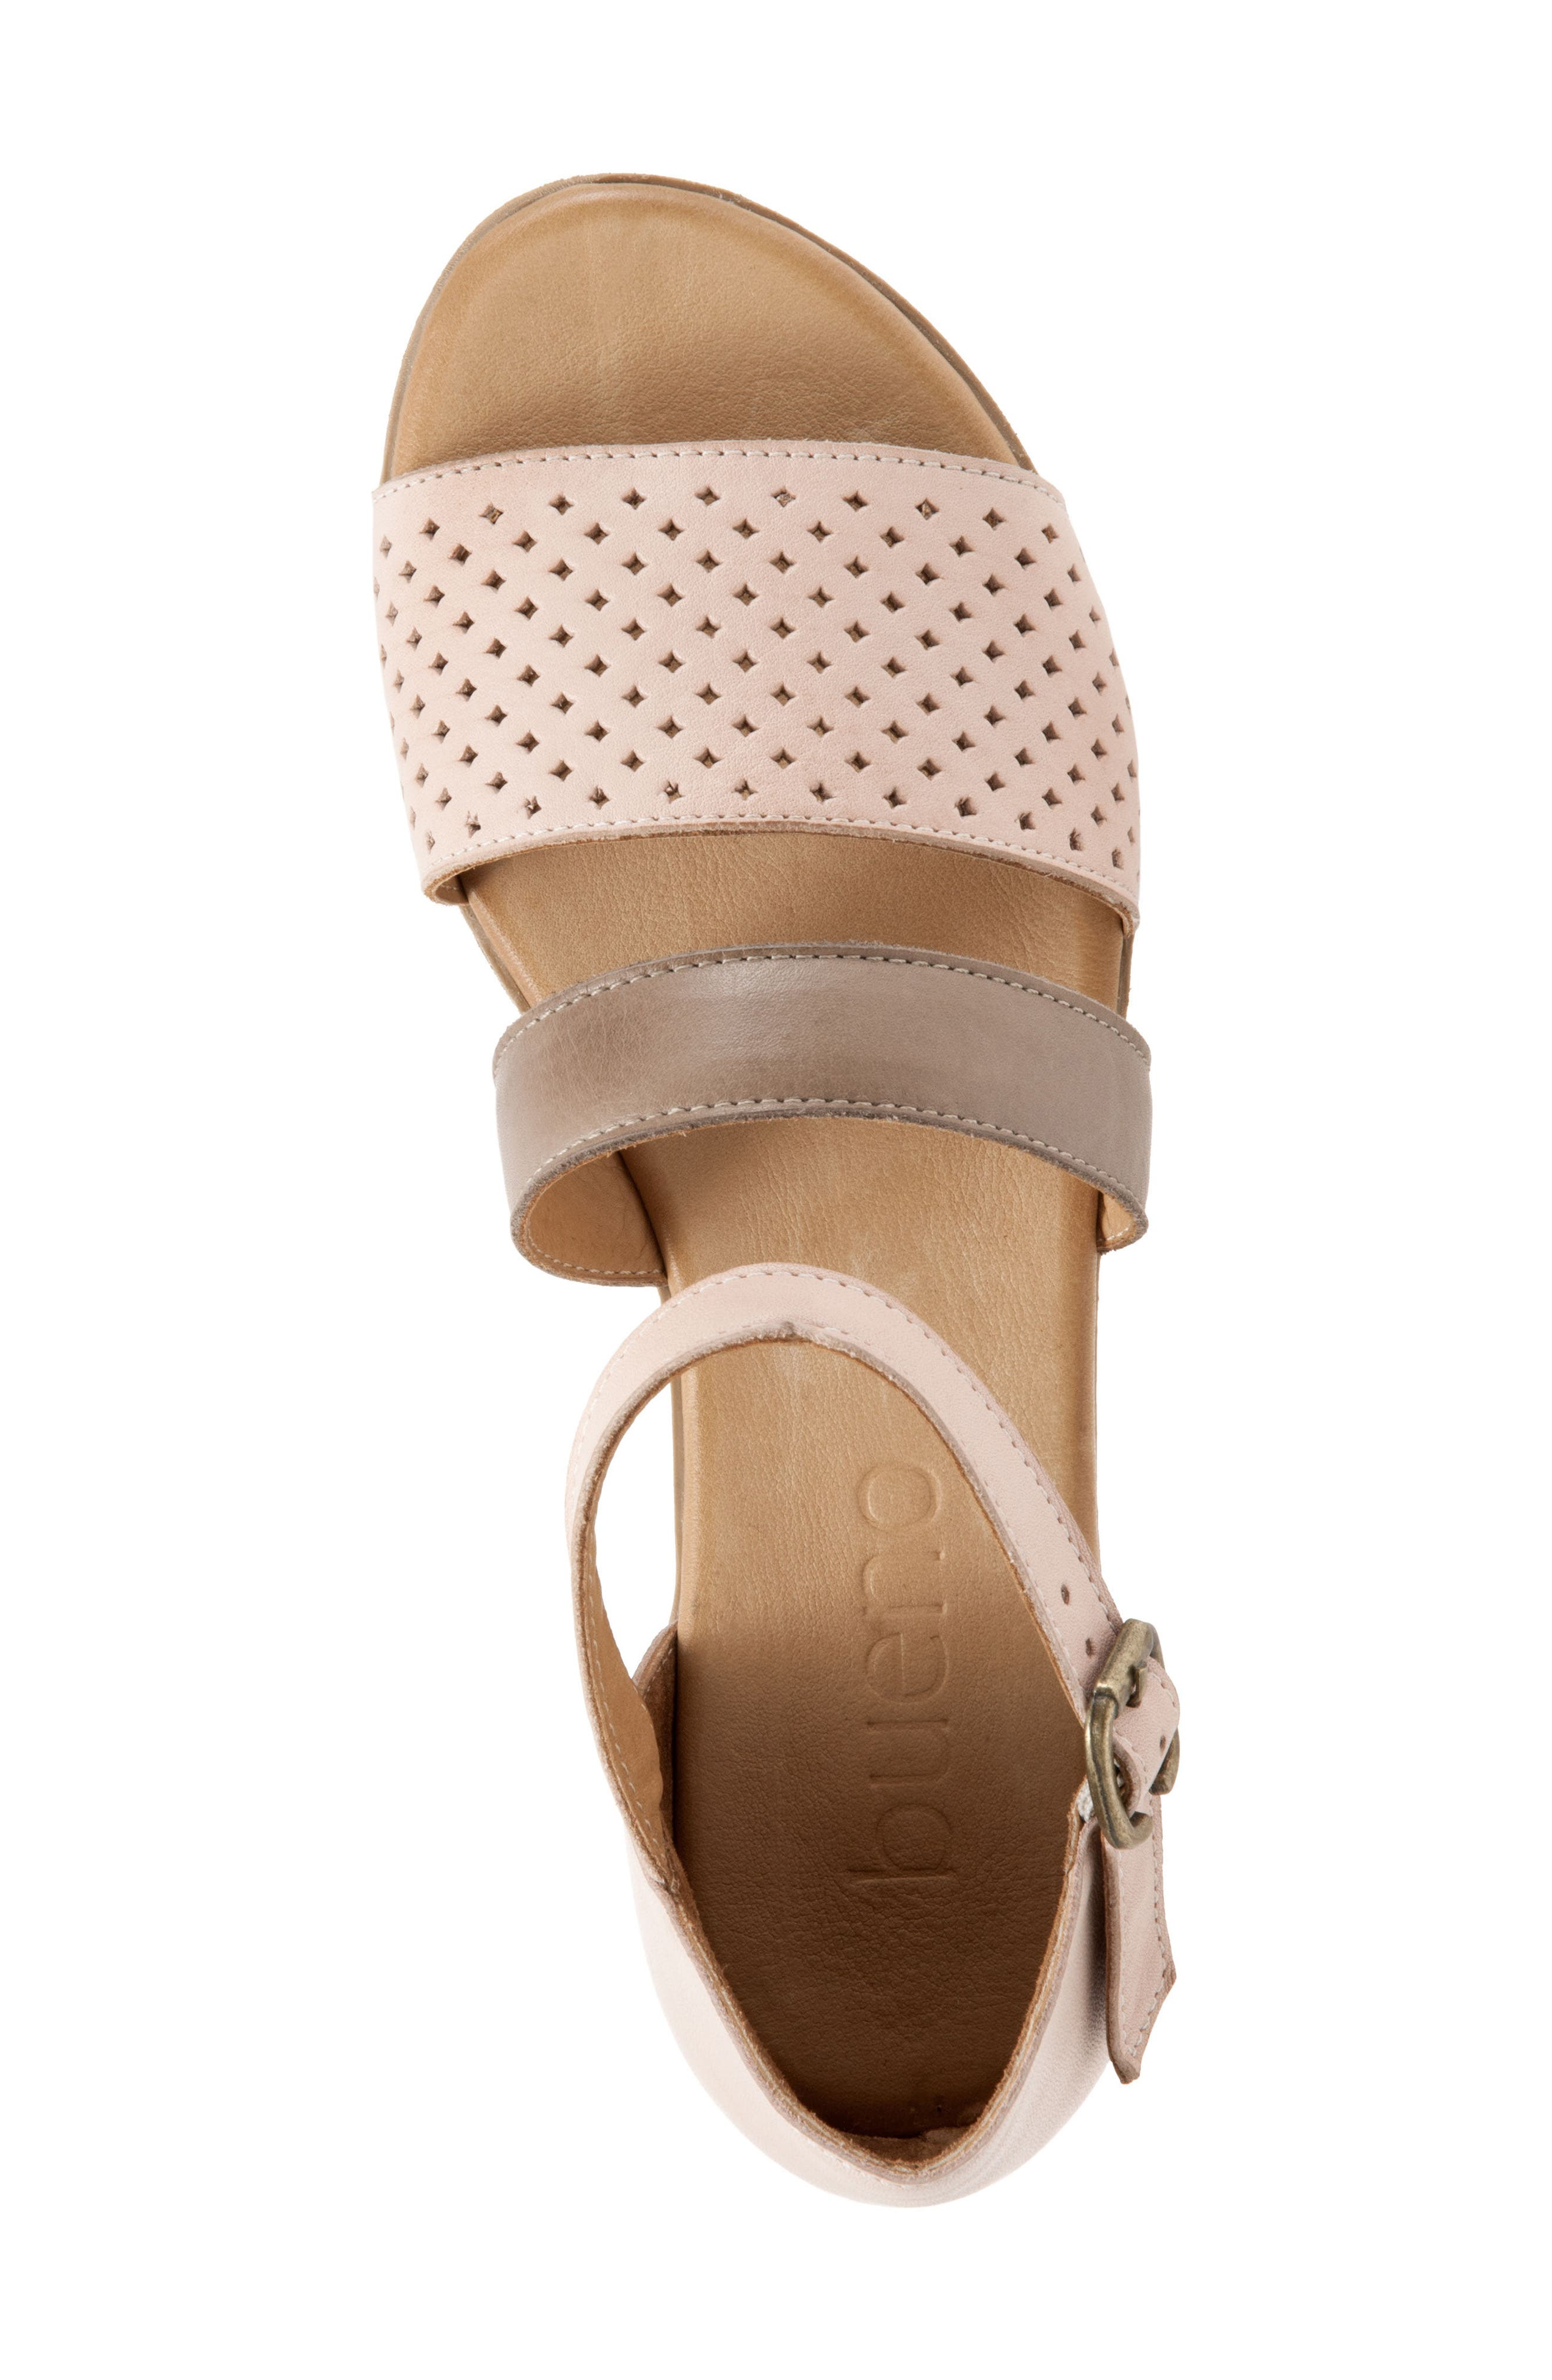 Janet Perforated Flat Sandal,                             Alternate thumbnail 5, color,                             Pale Pink Leather